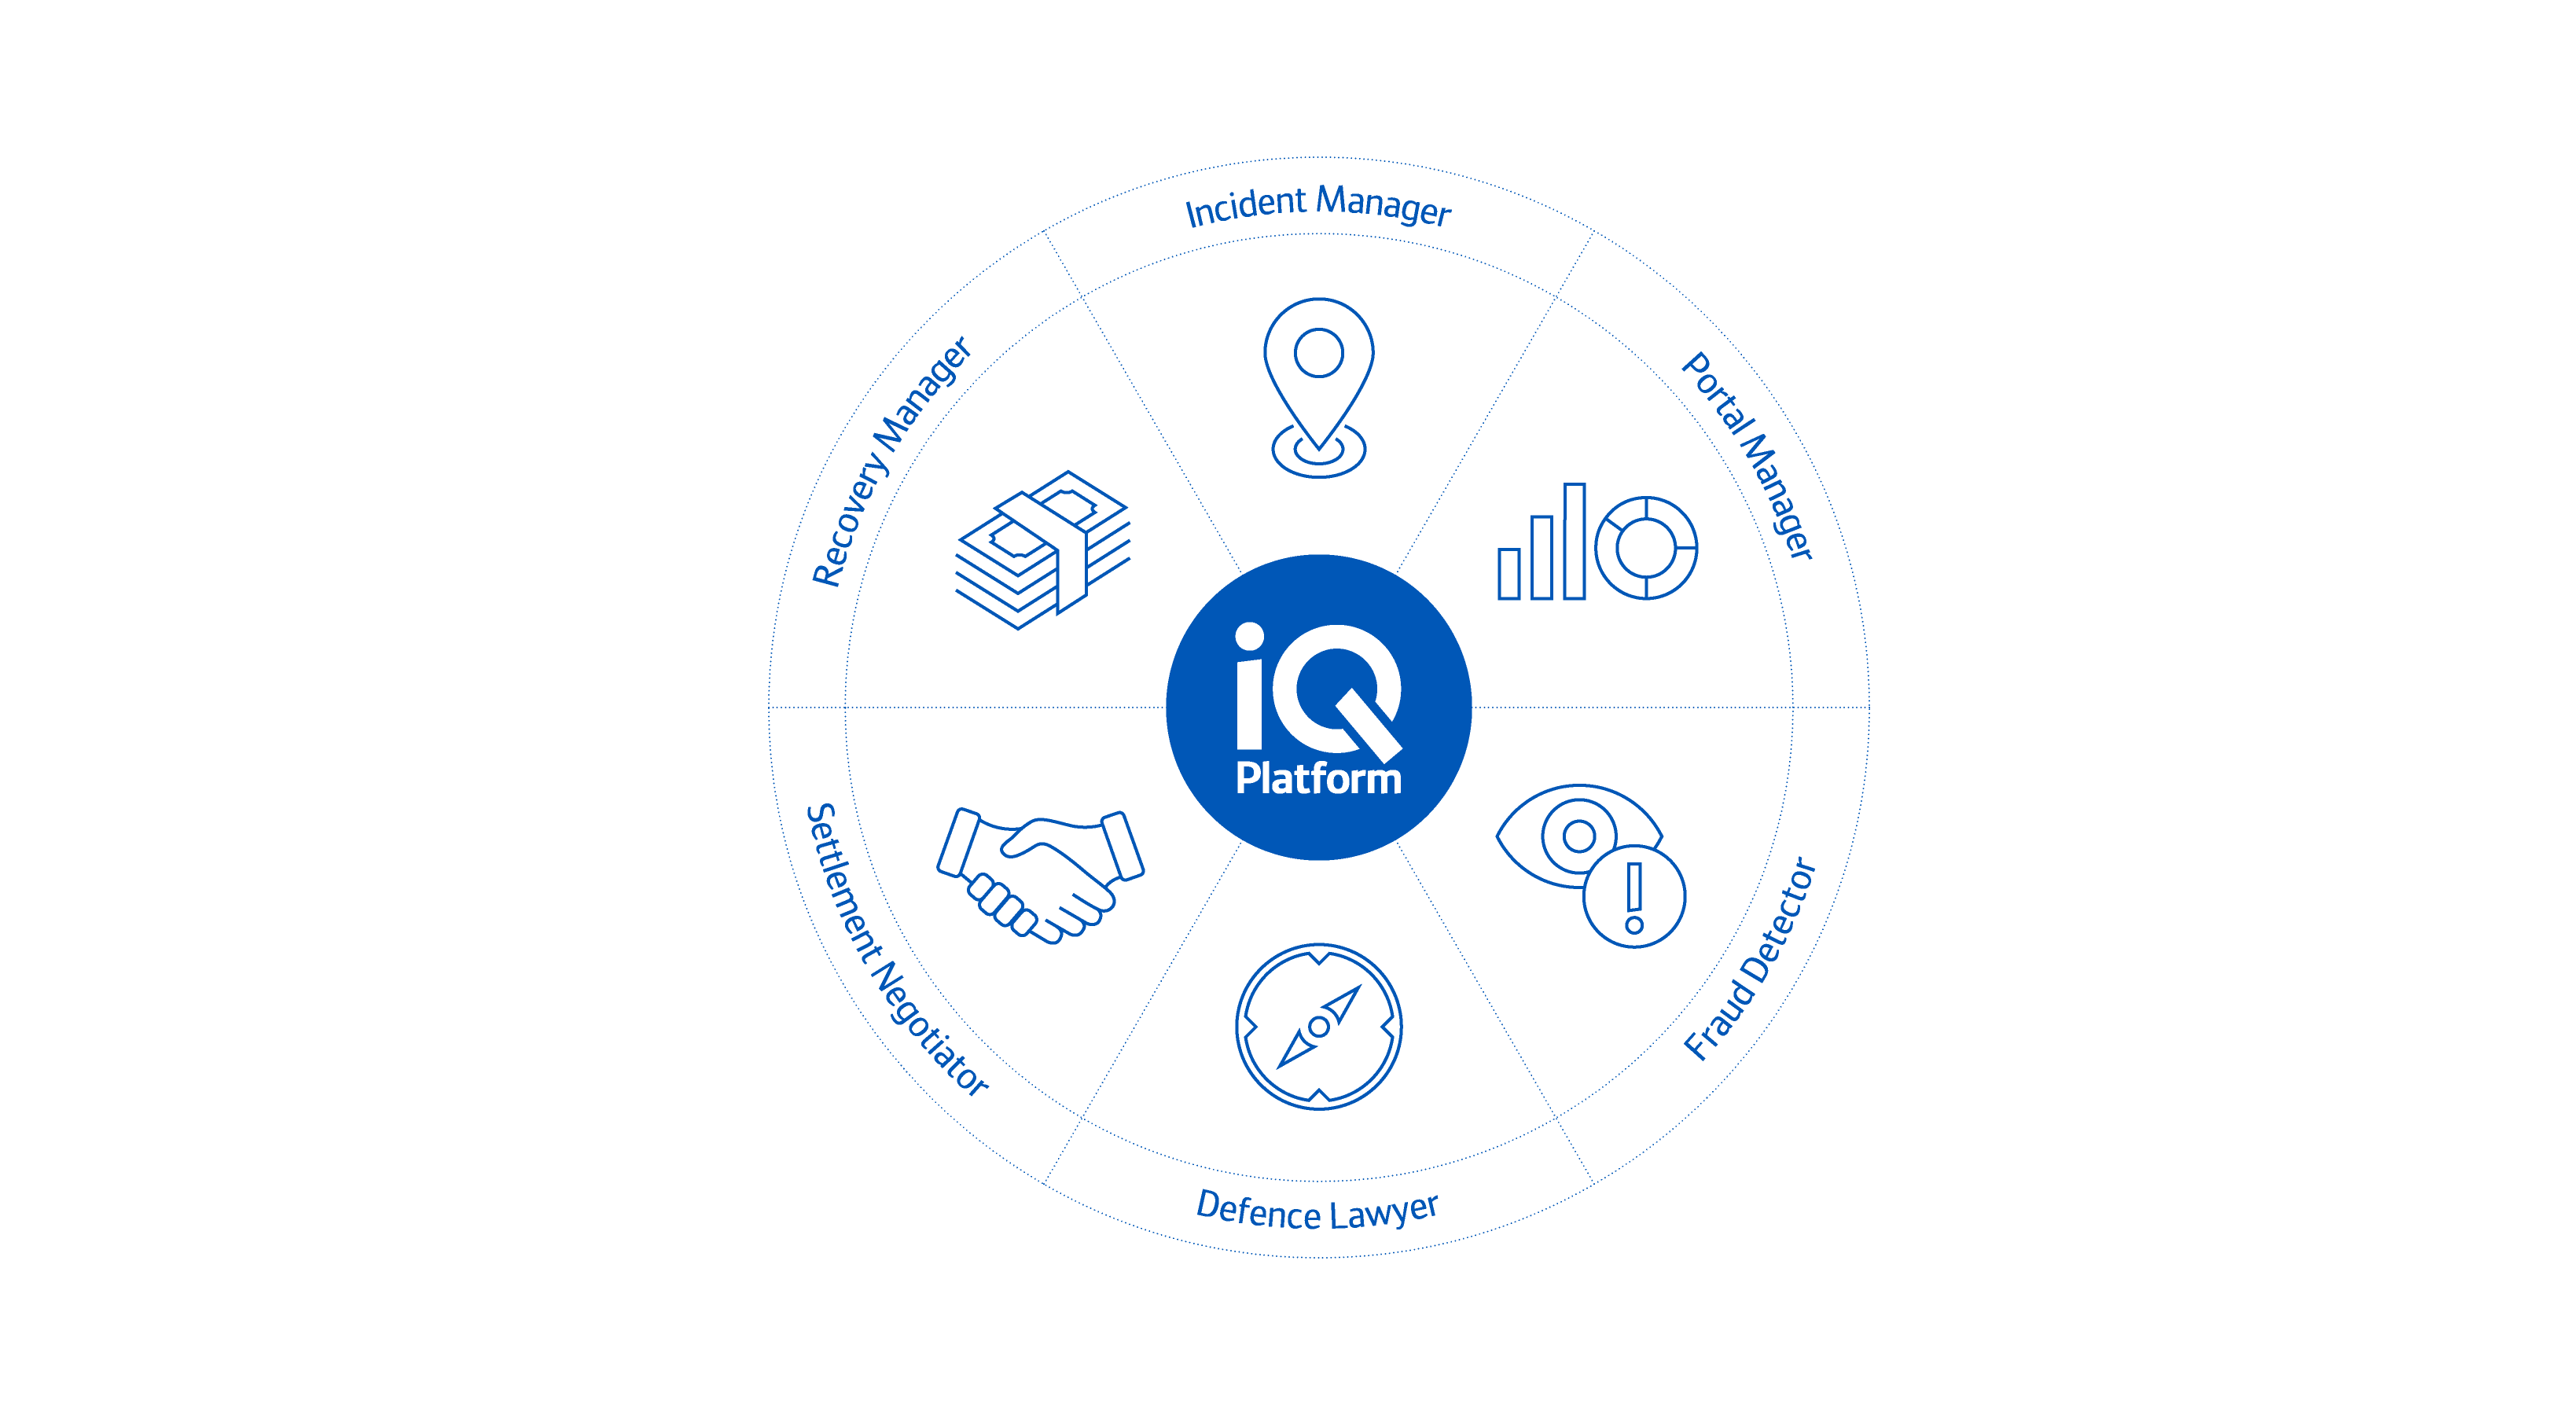 Kennedys IQ website product diagram